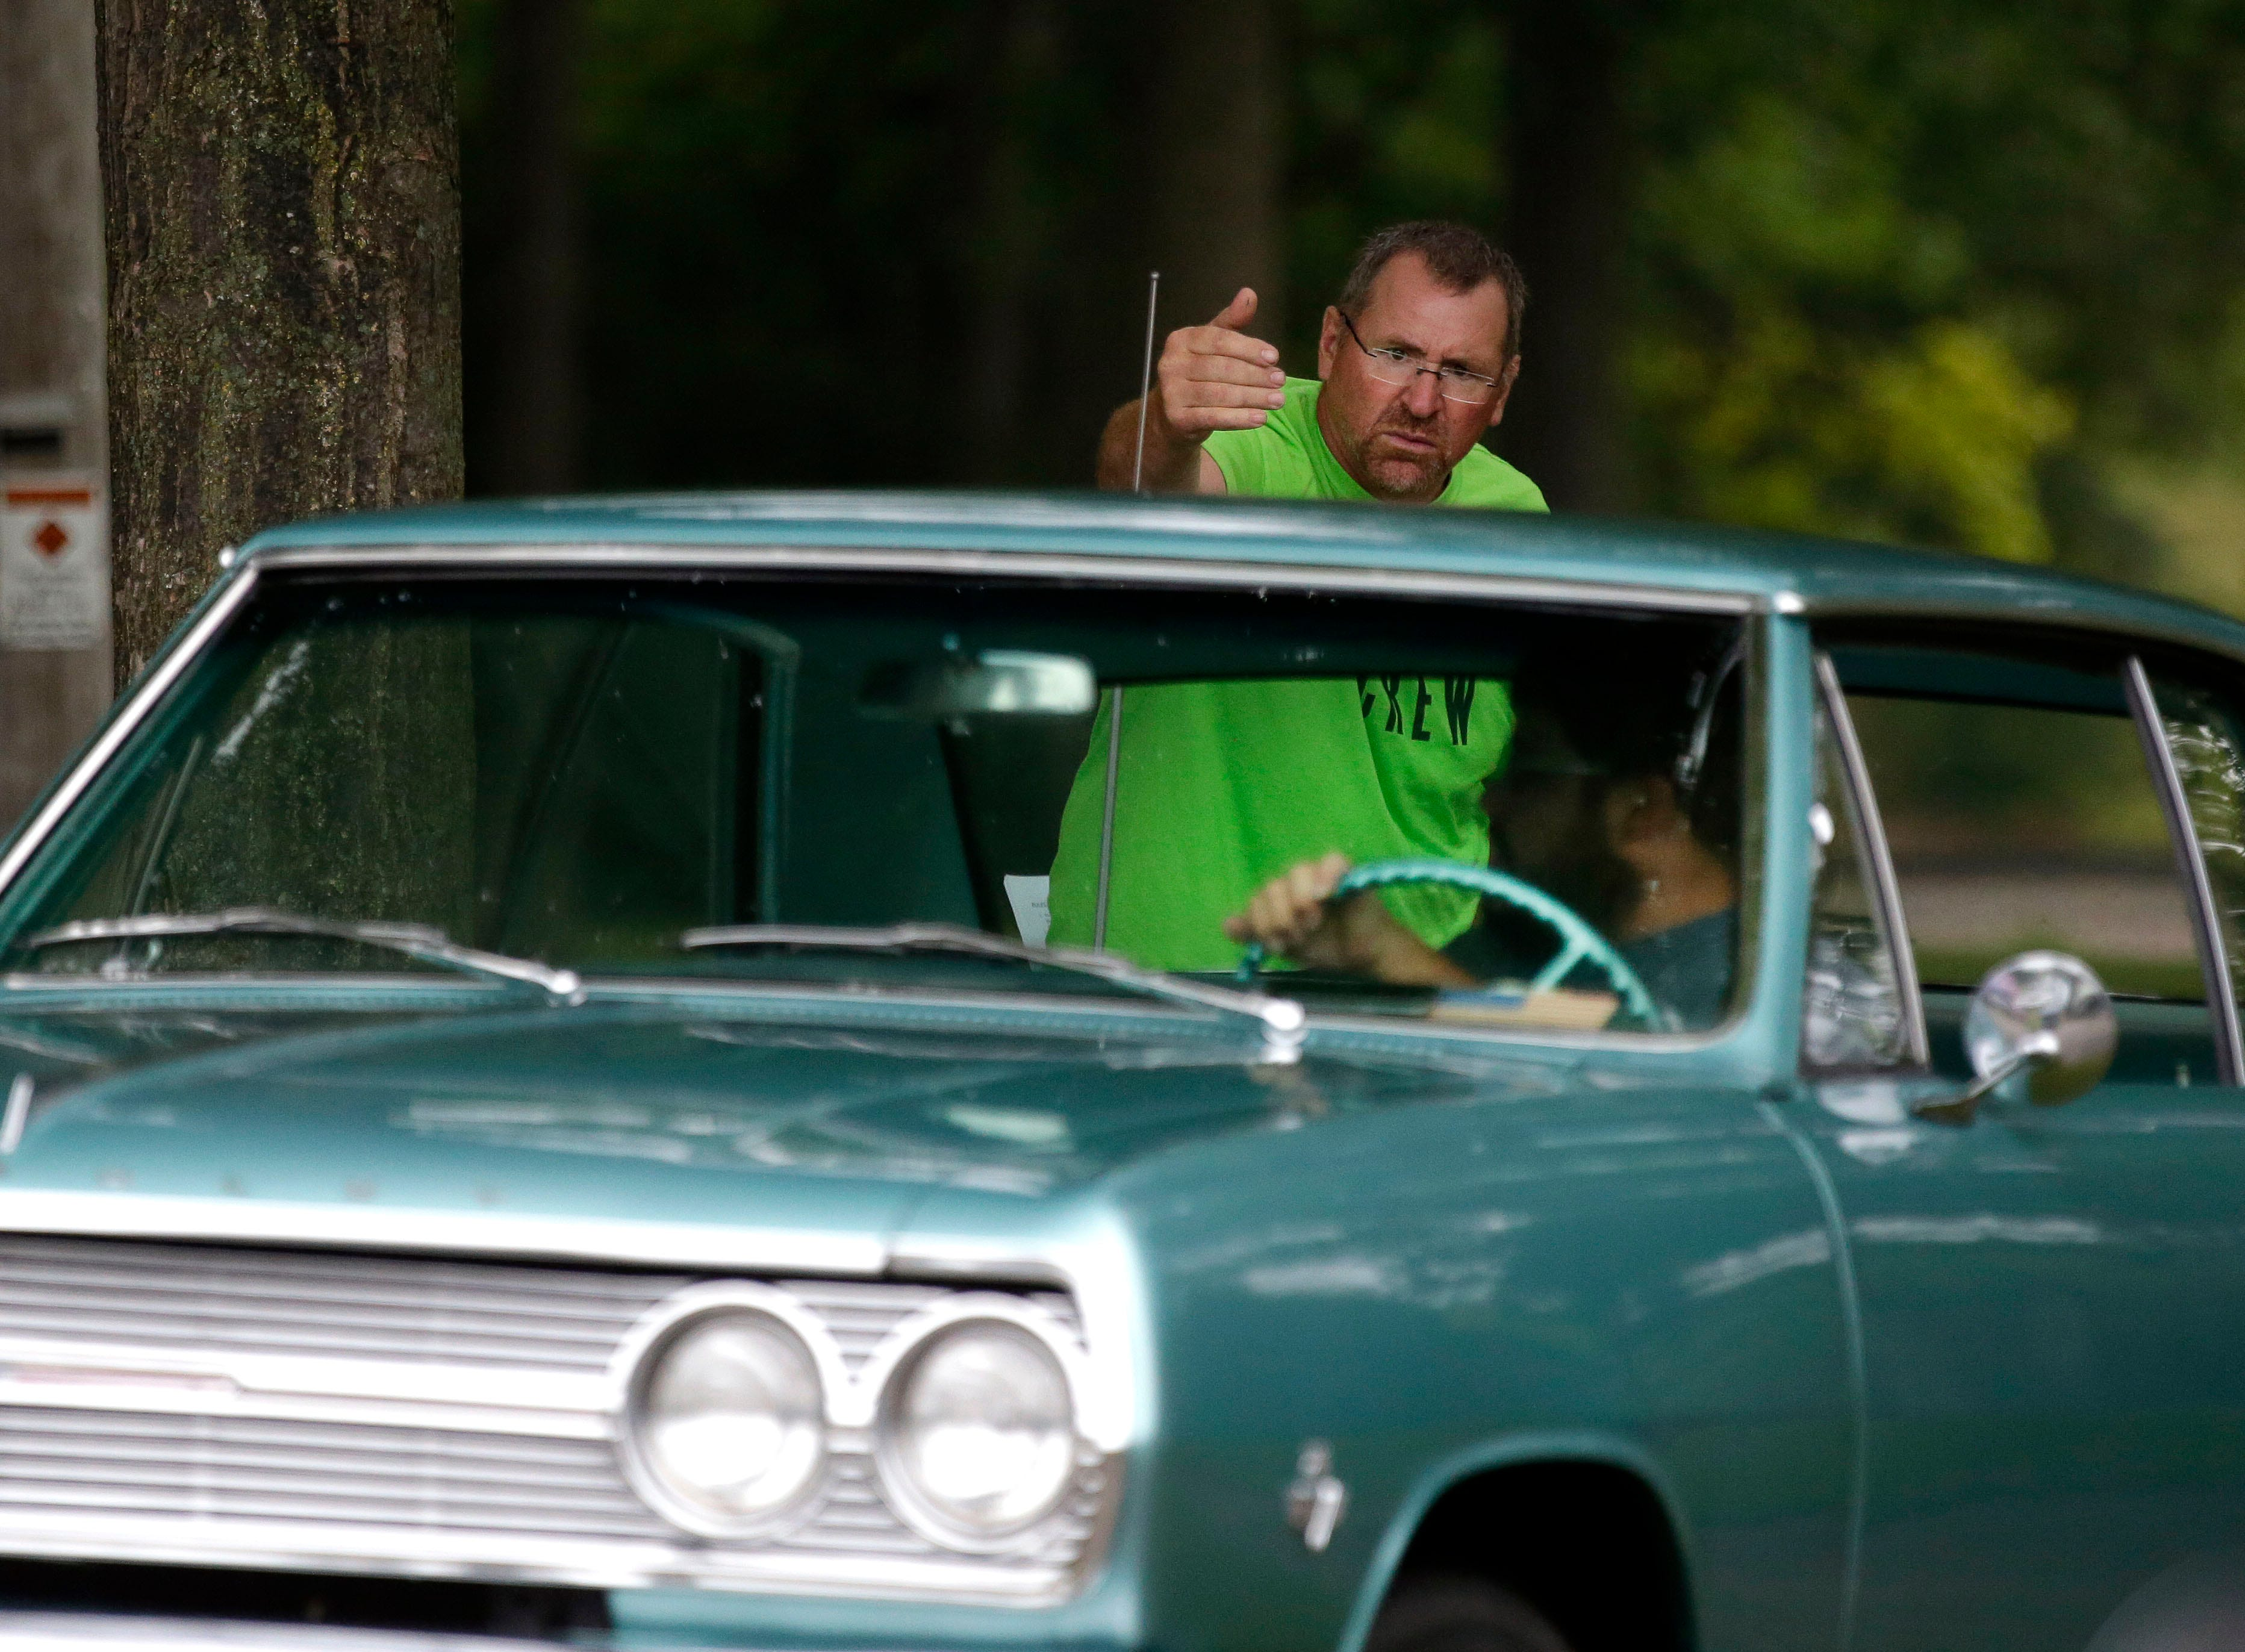 Randy Weiland directs Jeff Brecklin as he parks his car during the Appleton Old Car Show and Swap Meet Sunday, July 22, 2018, at Pierce Park in Appleton, Wis.